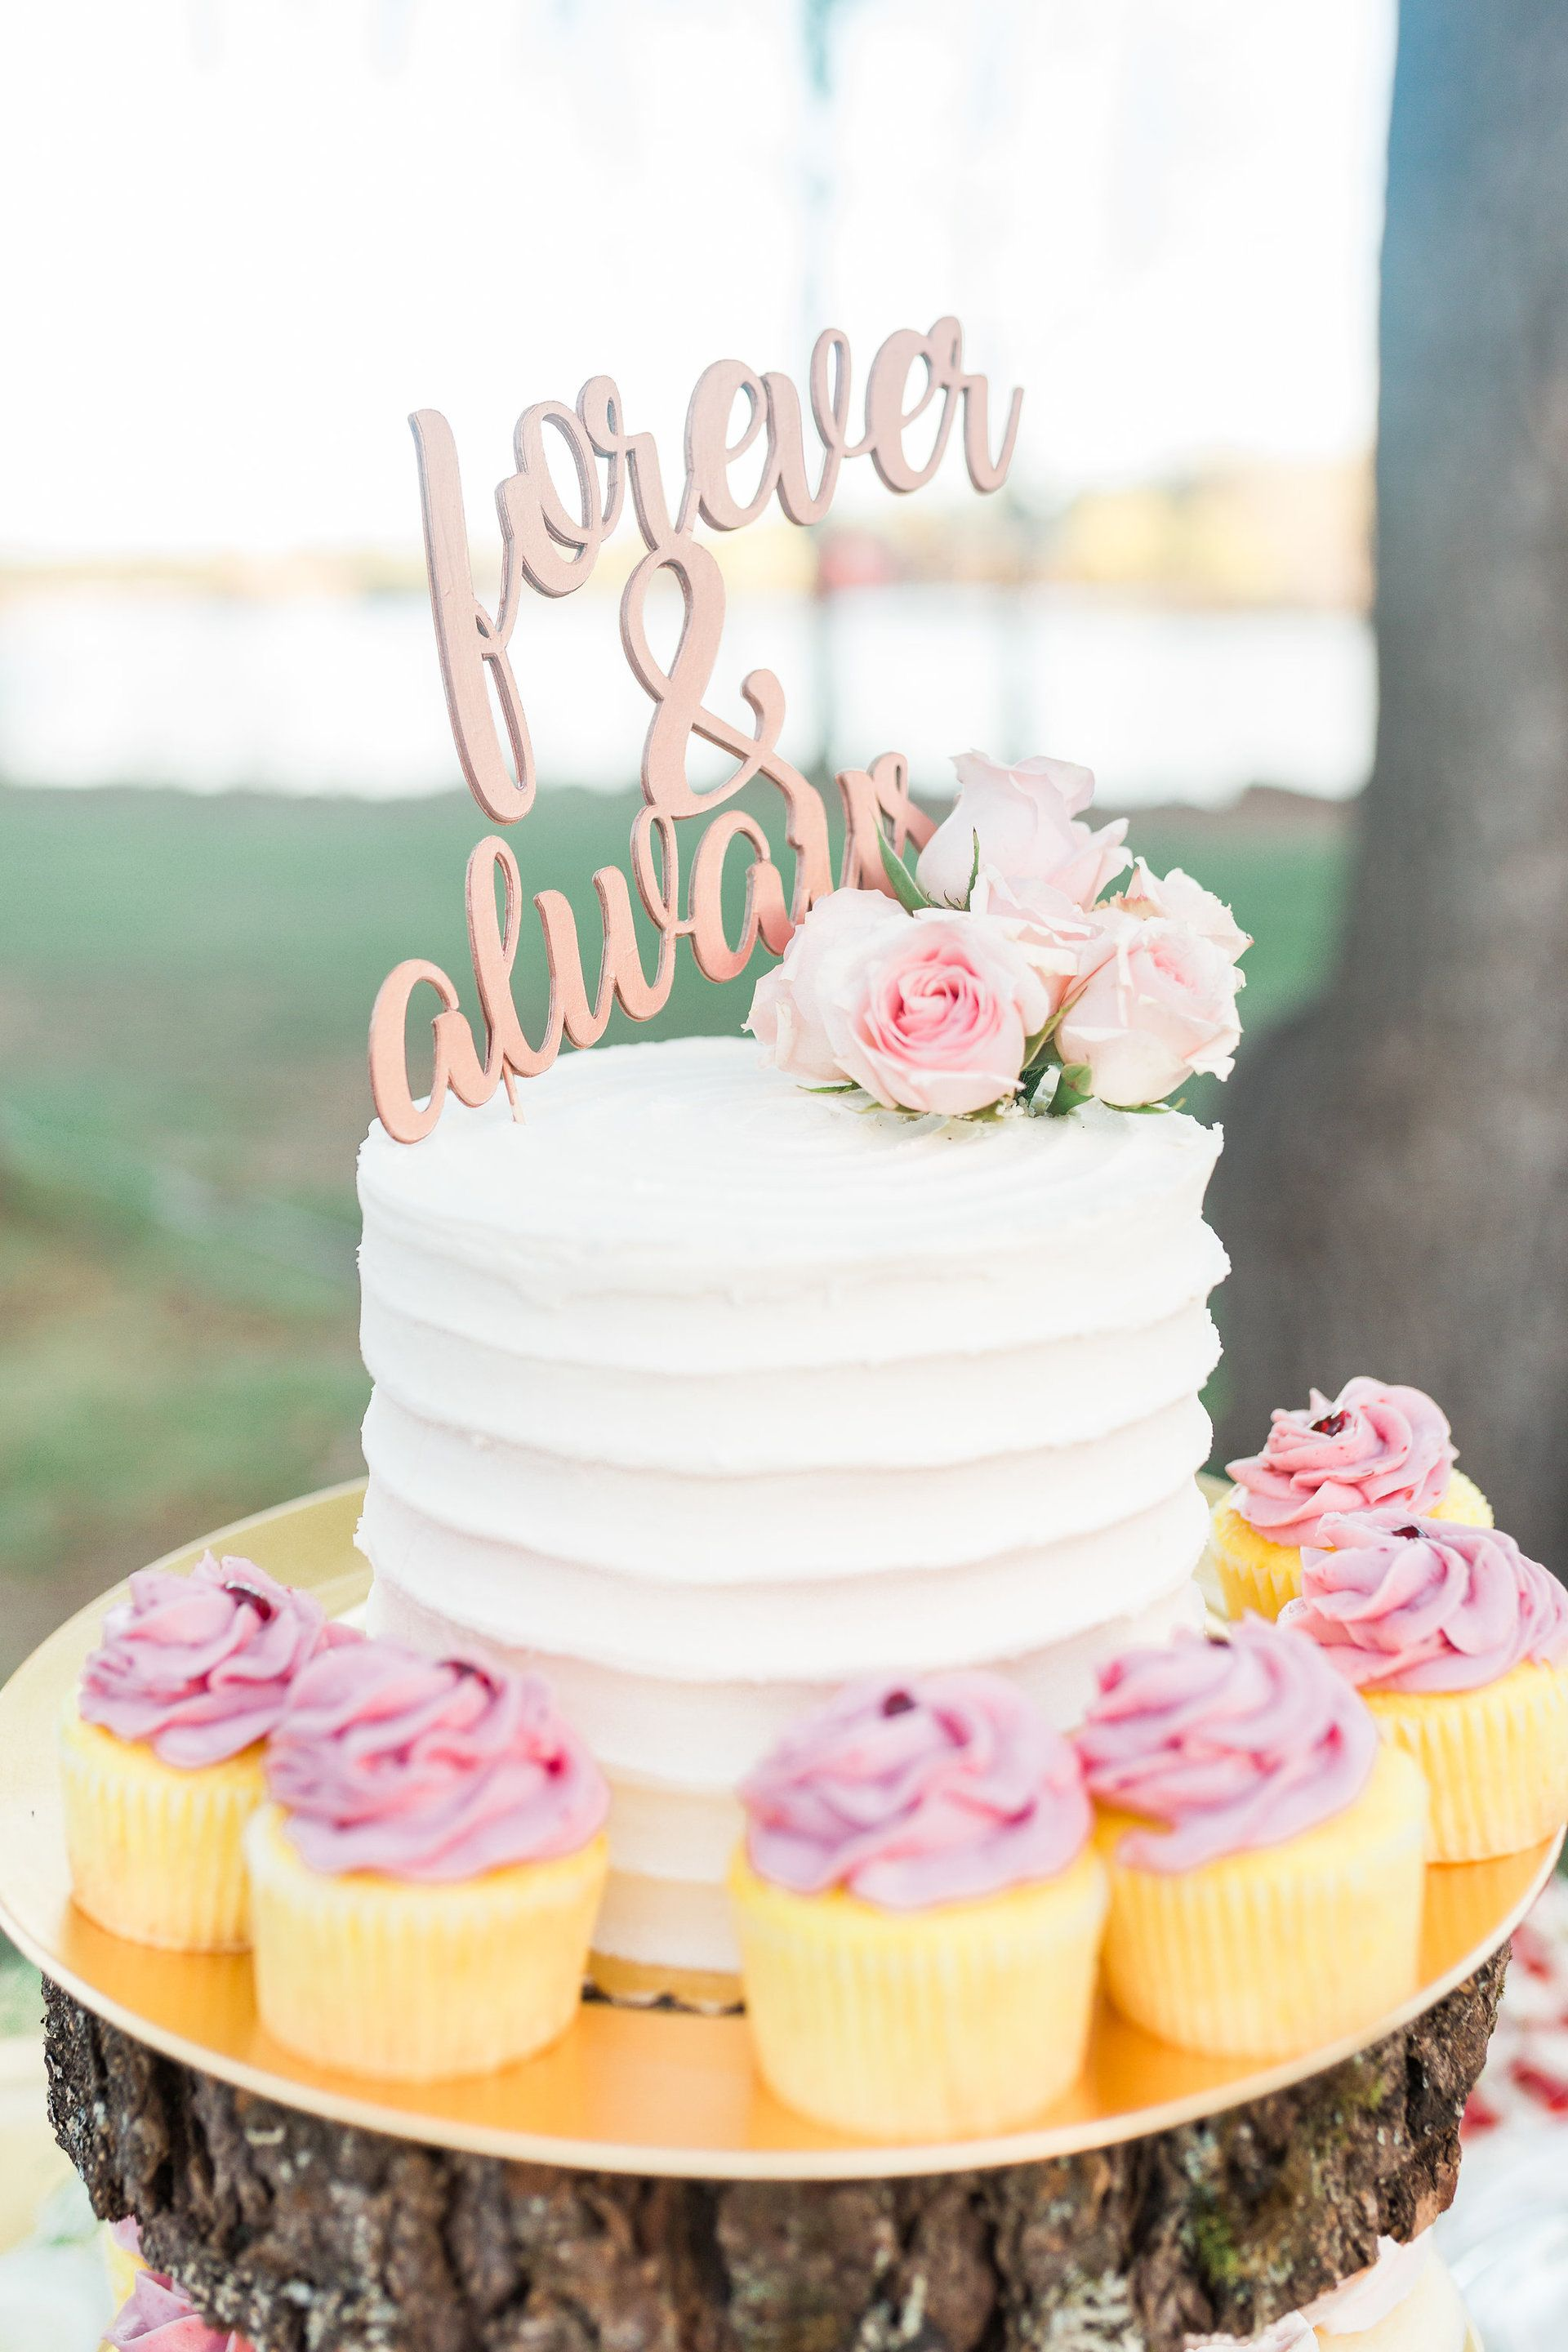 The Smarter Way to Wed | Pinterest | Wedding cake pink, White ...